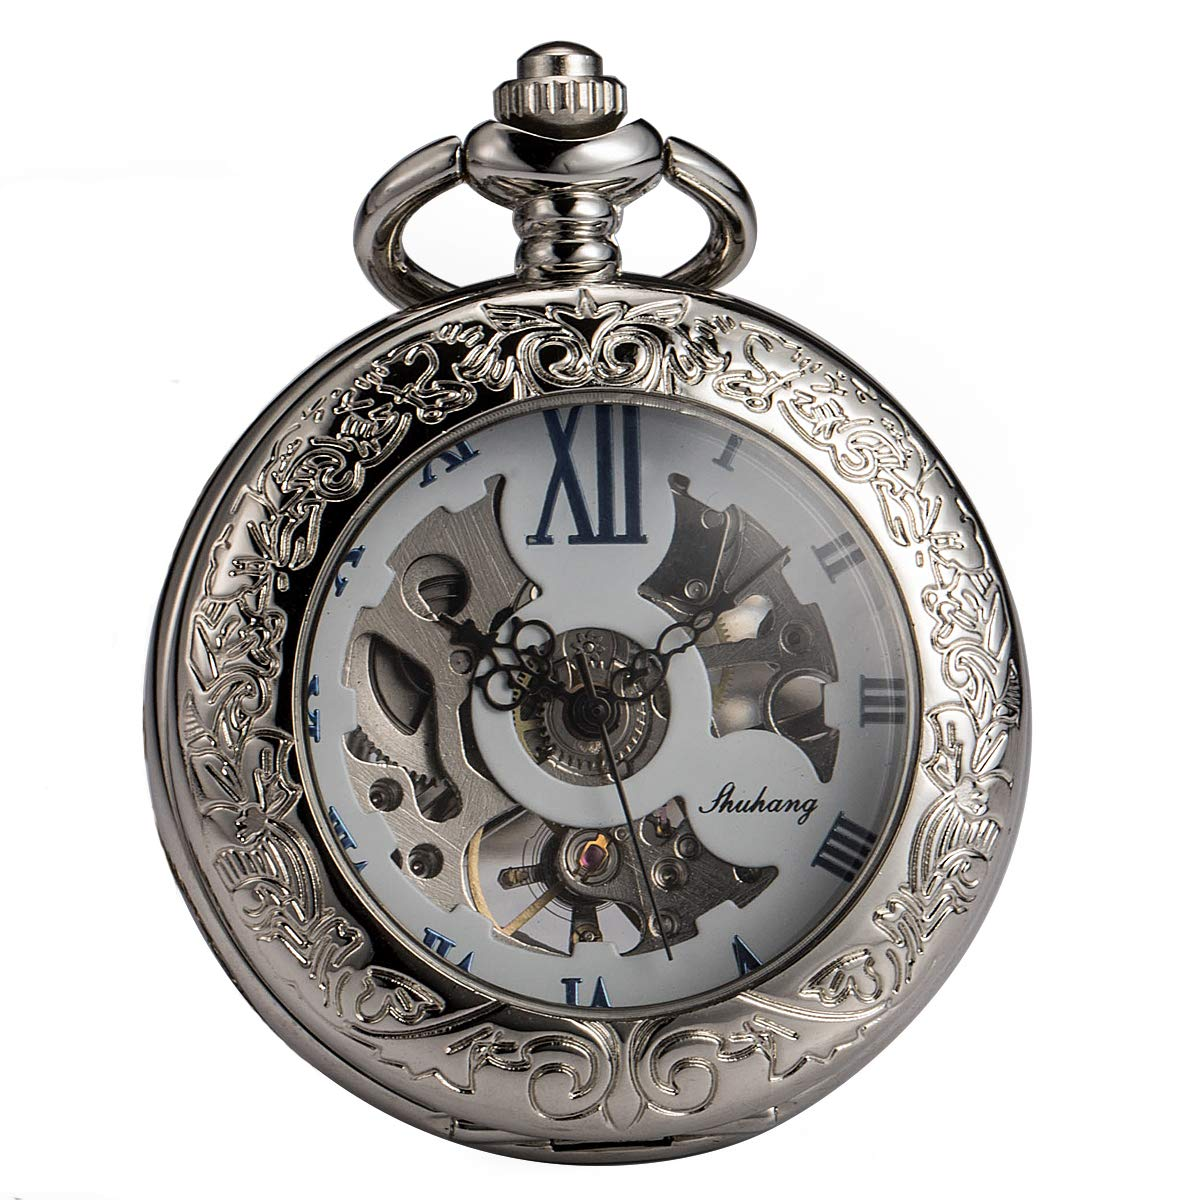 SIBOSUN Magnifier Pocket Watch With Chain Box Skeleton Mechanical Roman Numberals Antique Silver White